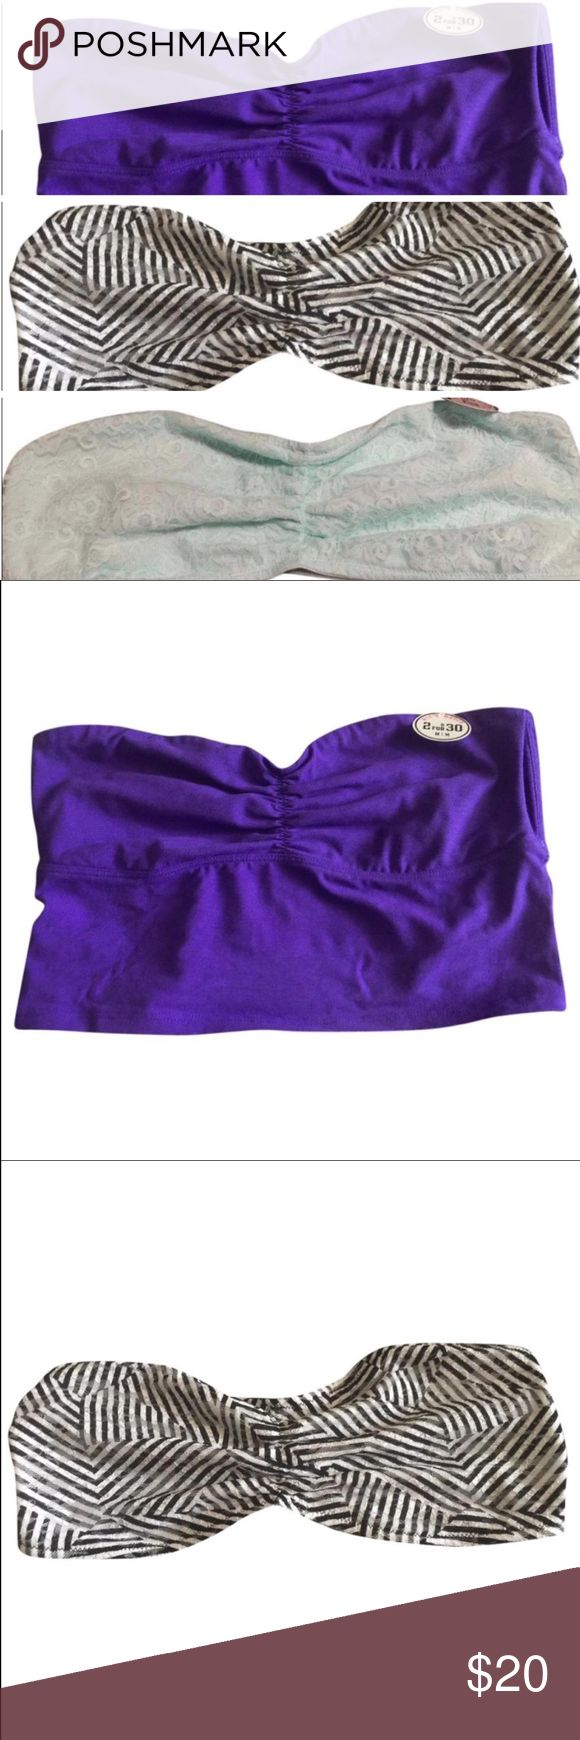 Victoria's Secret bandeaus-Medium NWRT. Listing is for all three size medium bandeau tops from Victoria's Secret. One purple, one black and white, and one mint.  Willing to separate. PINK Victoria's Secret Intimates & Sleepwear Bandeaus